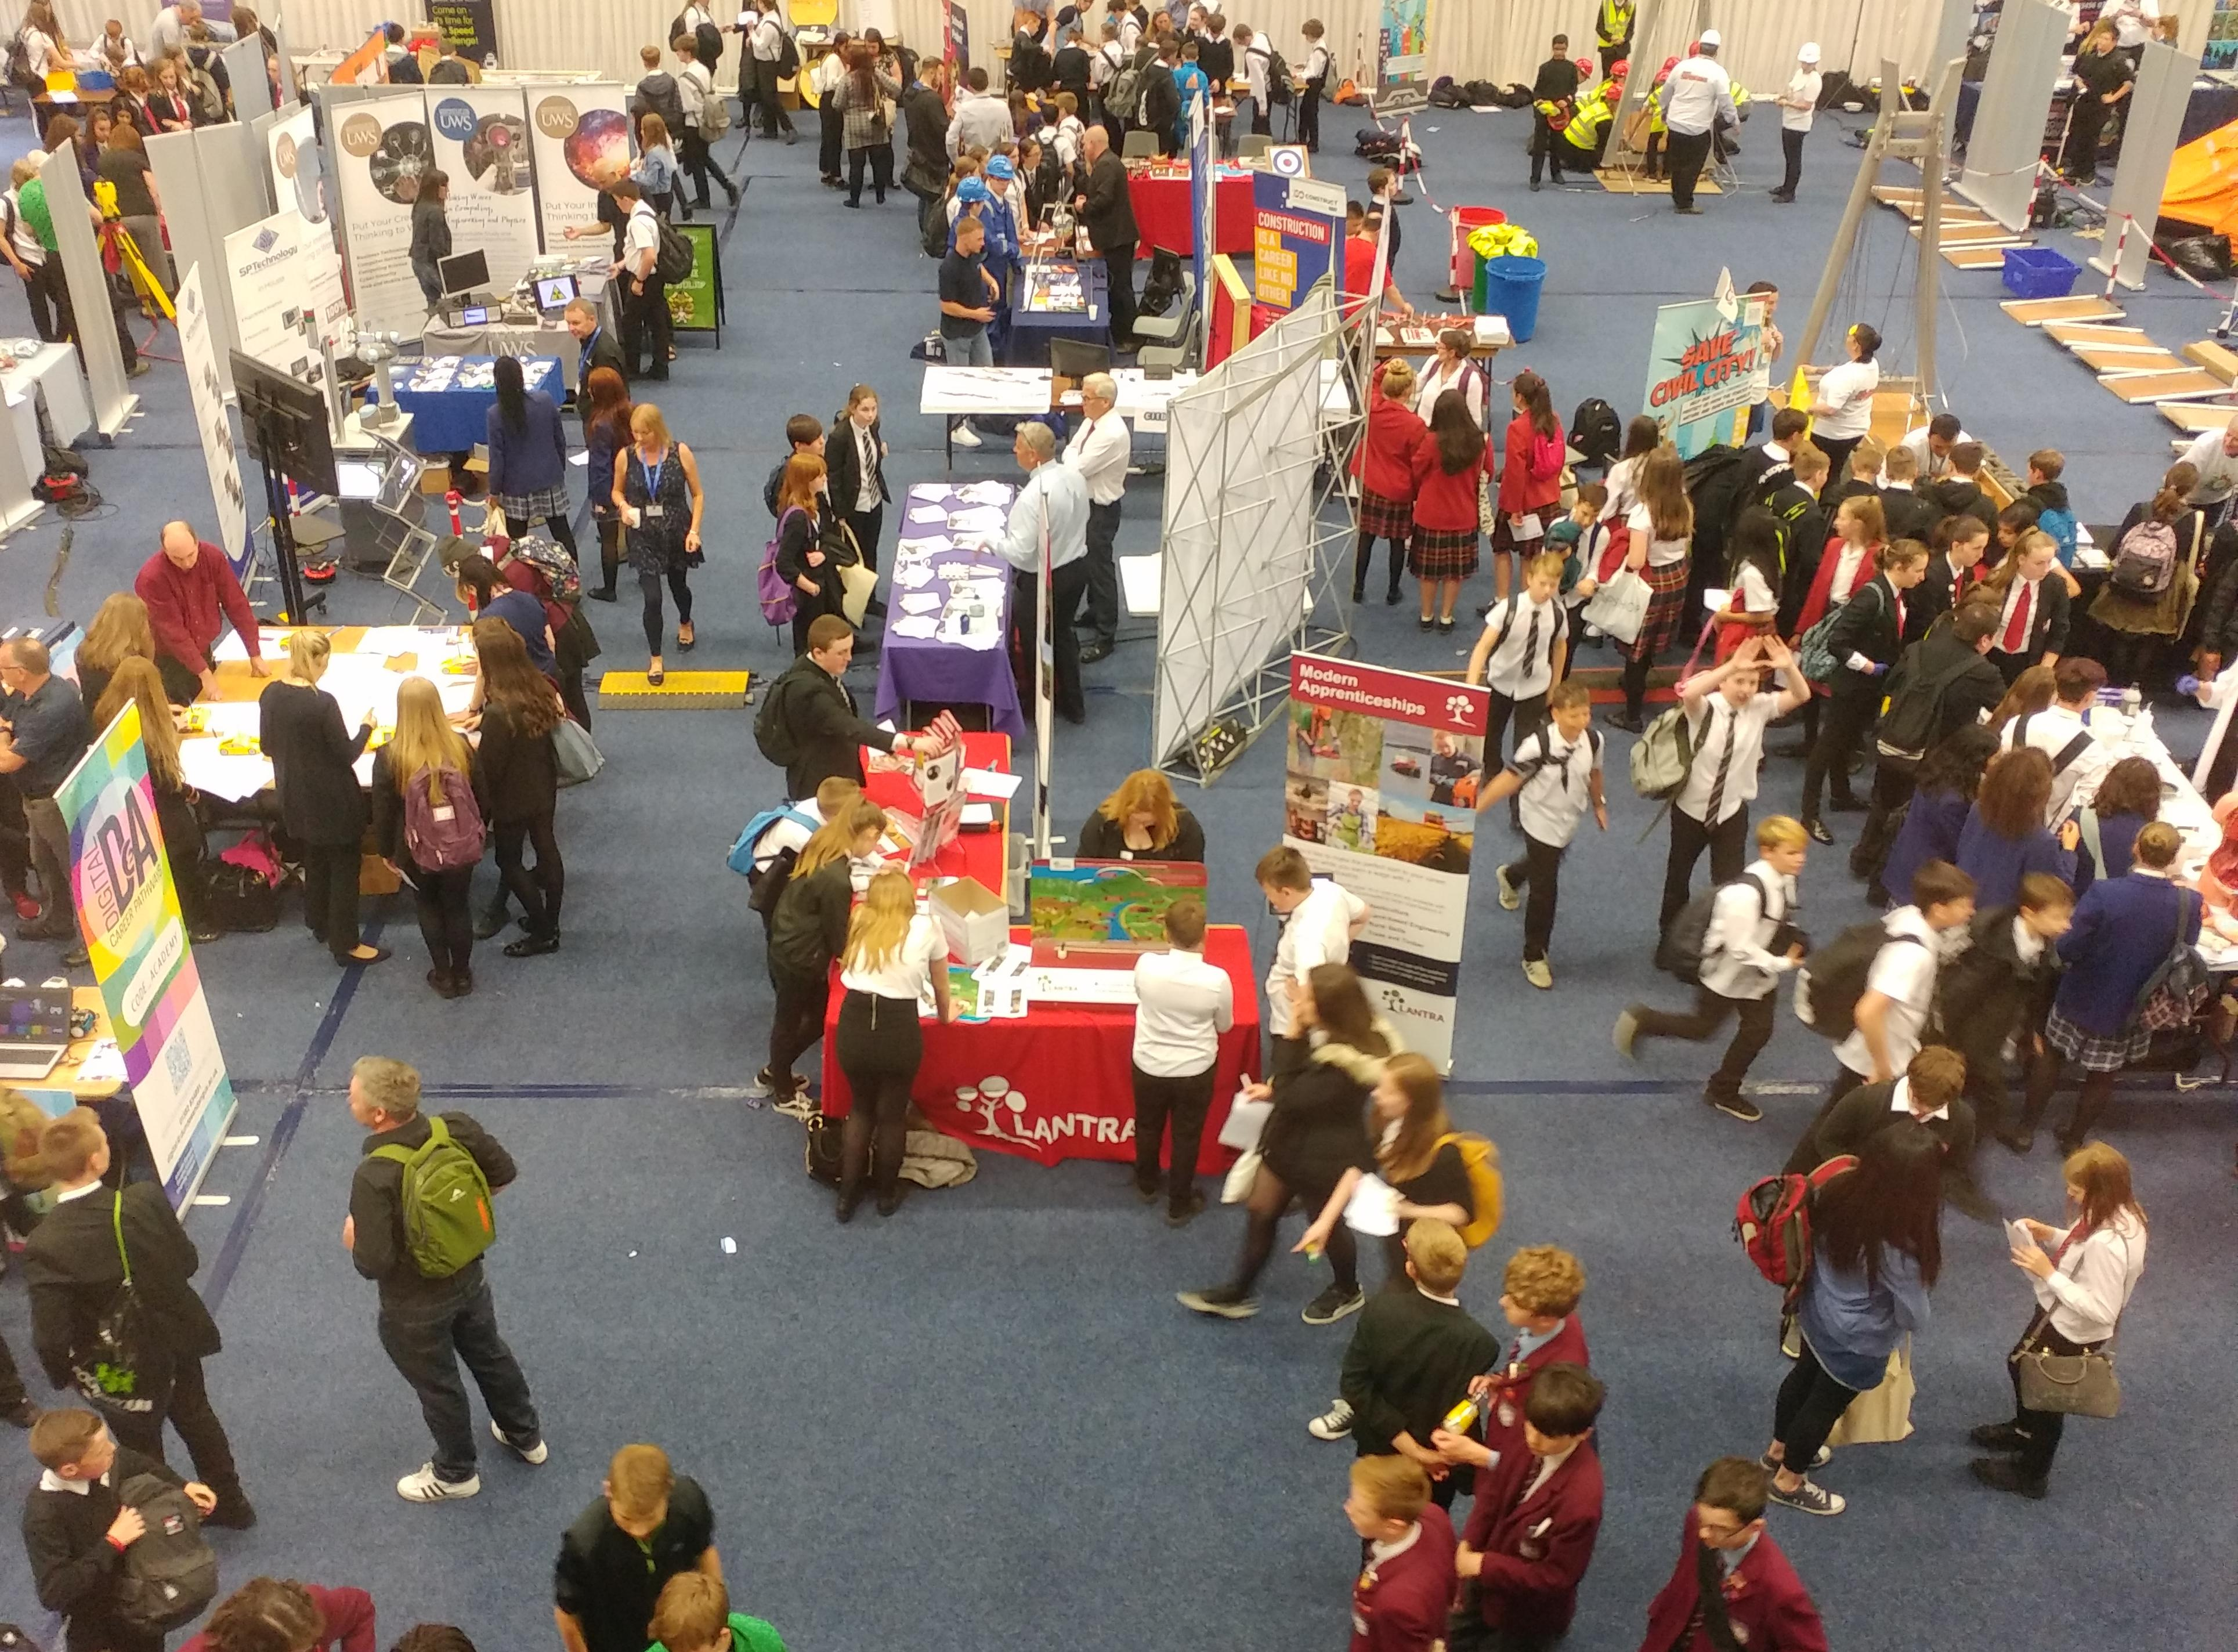 Big Bang event at Perth College UHI for STEM careers